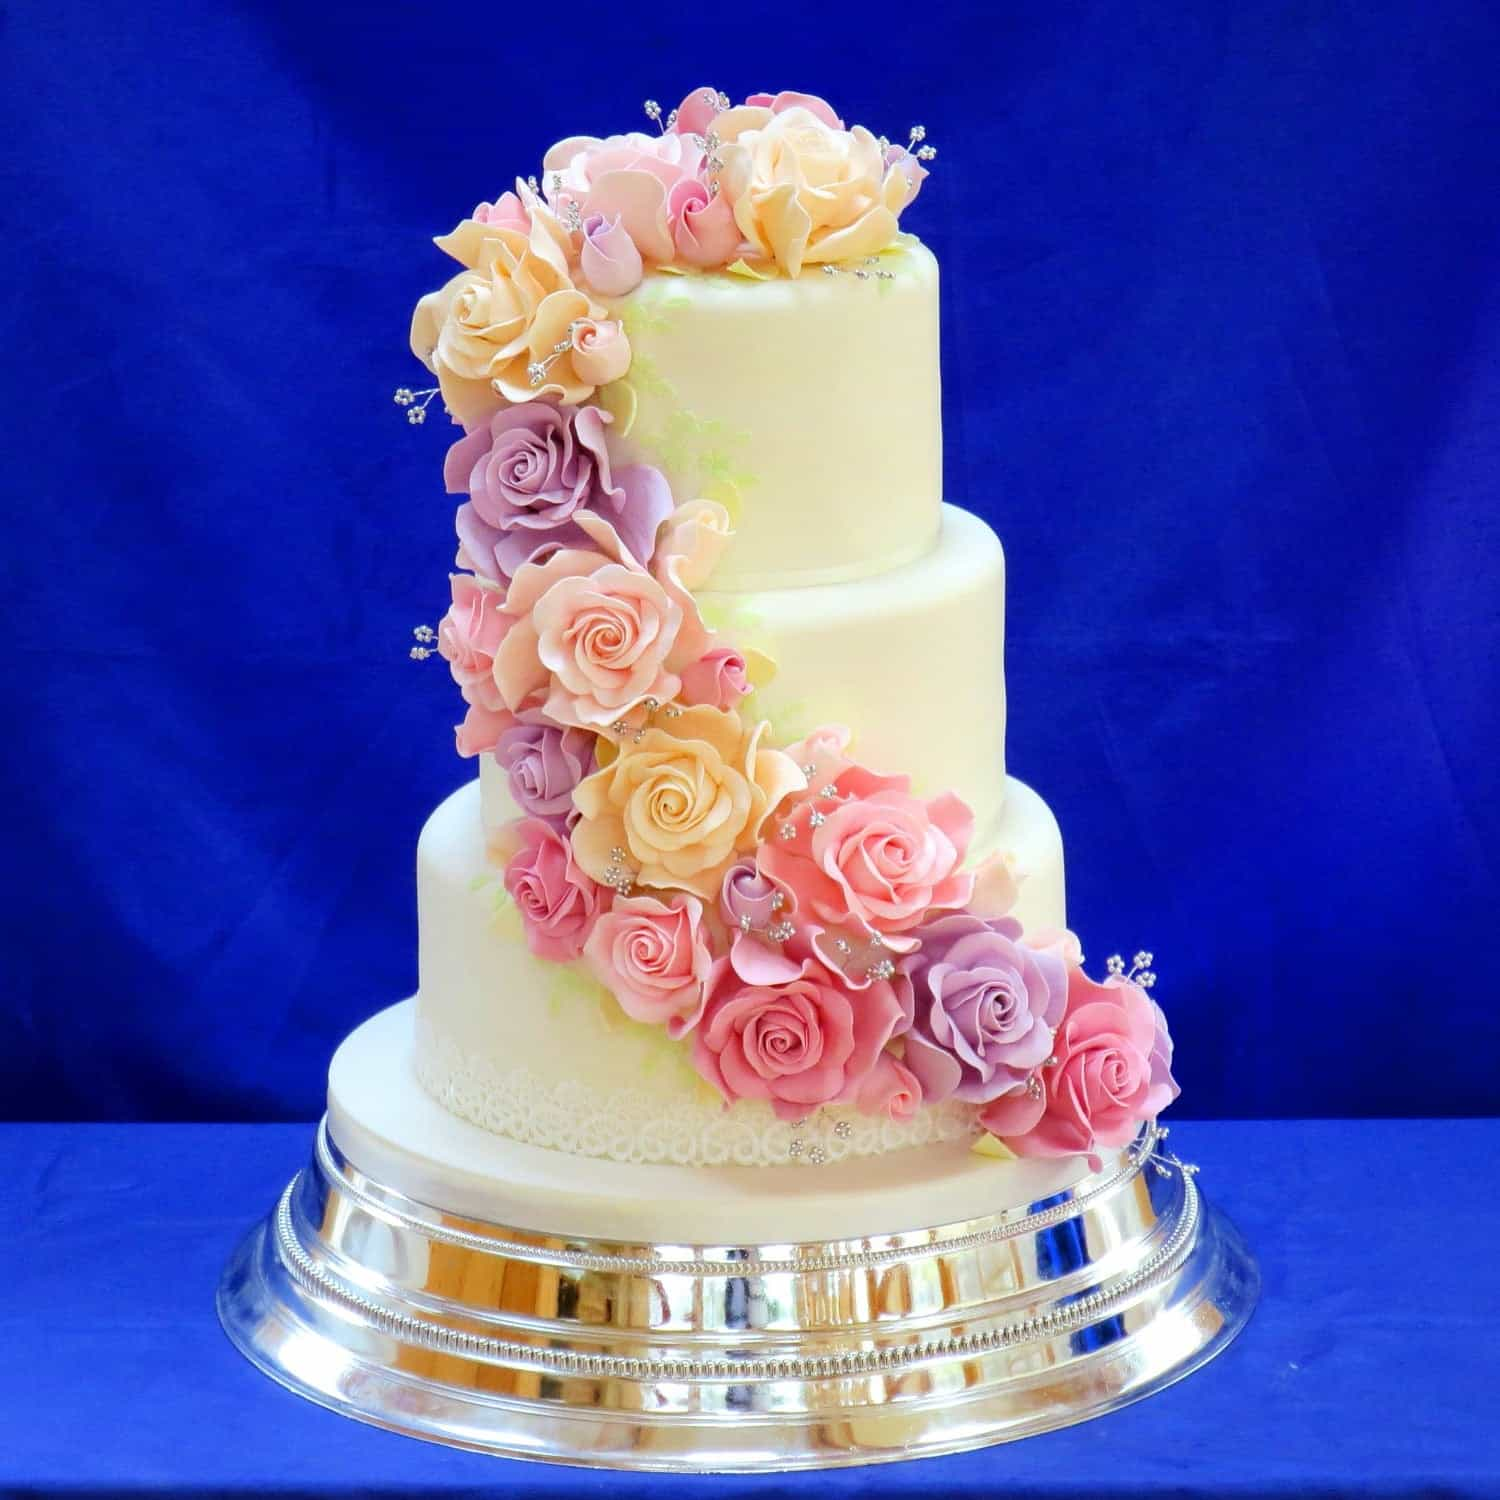 Romantic Classic Wedding Cake Decorated With Hand Made Sugar Roses (Image 14 of 16)